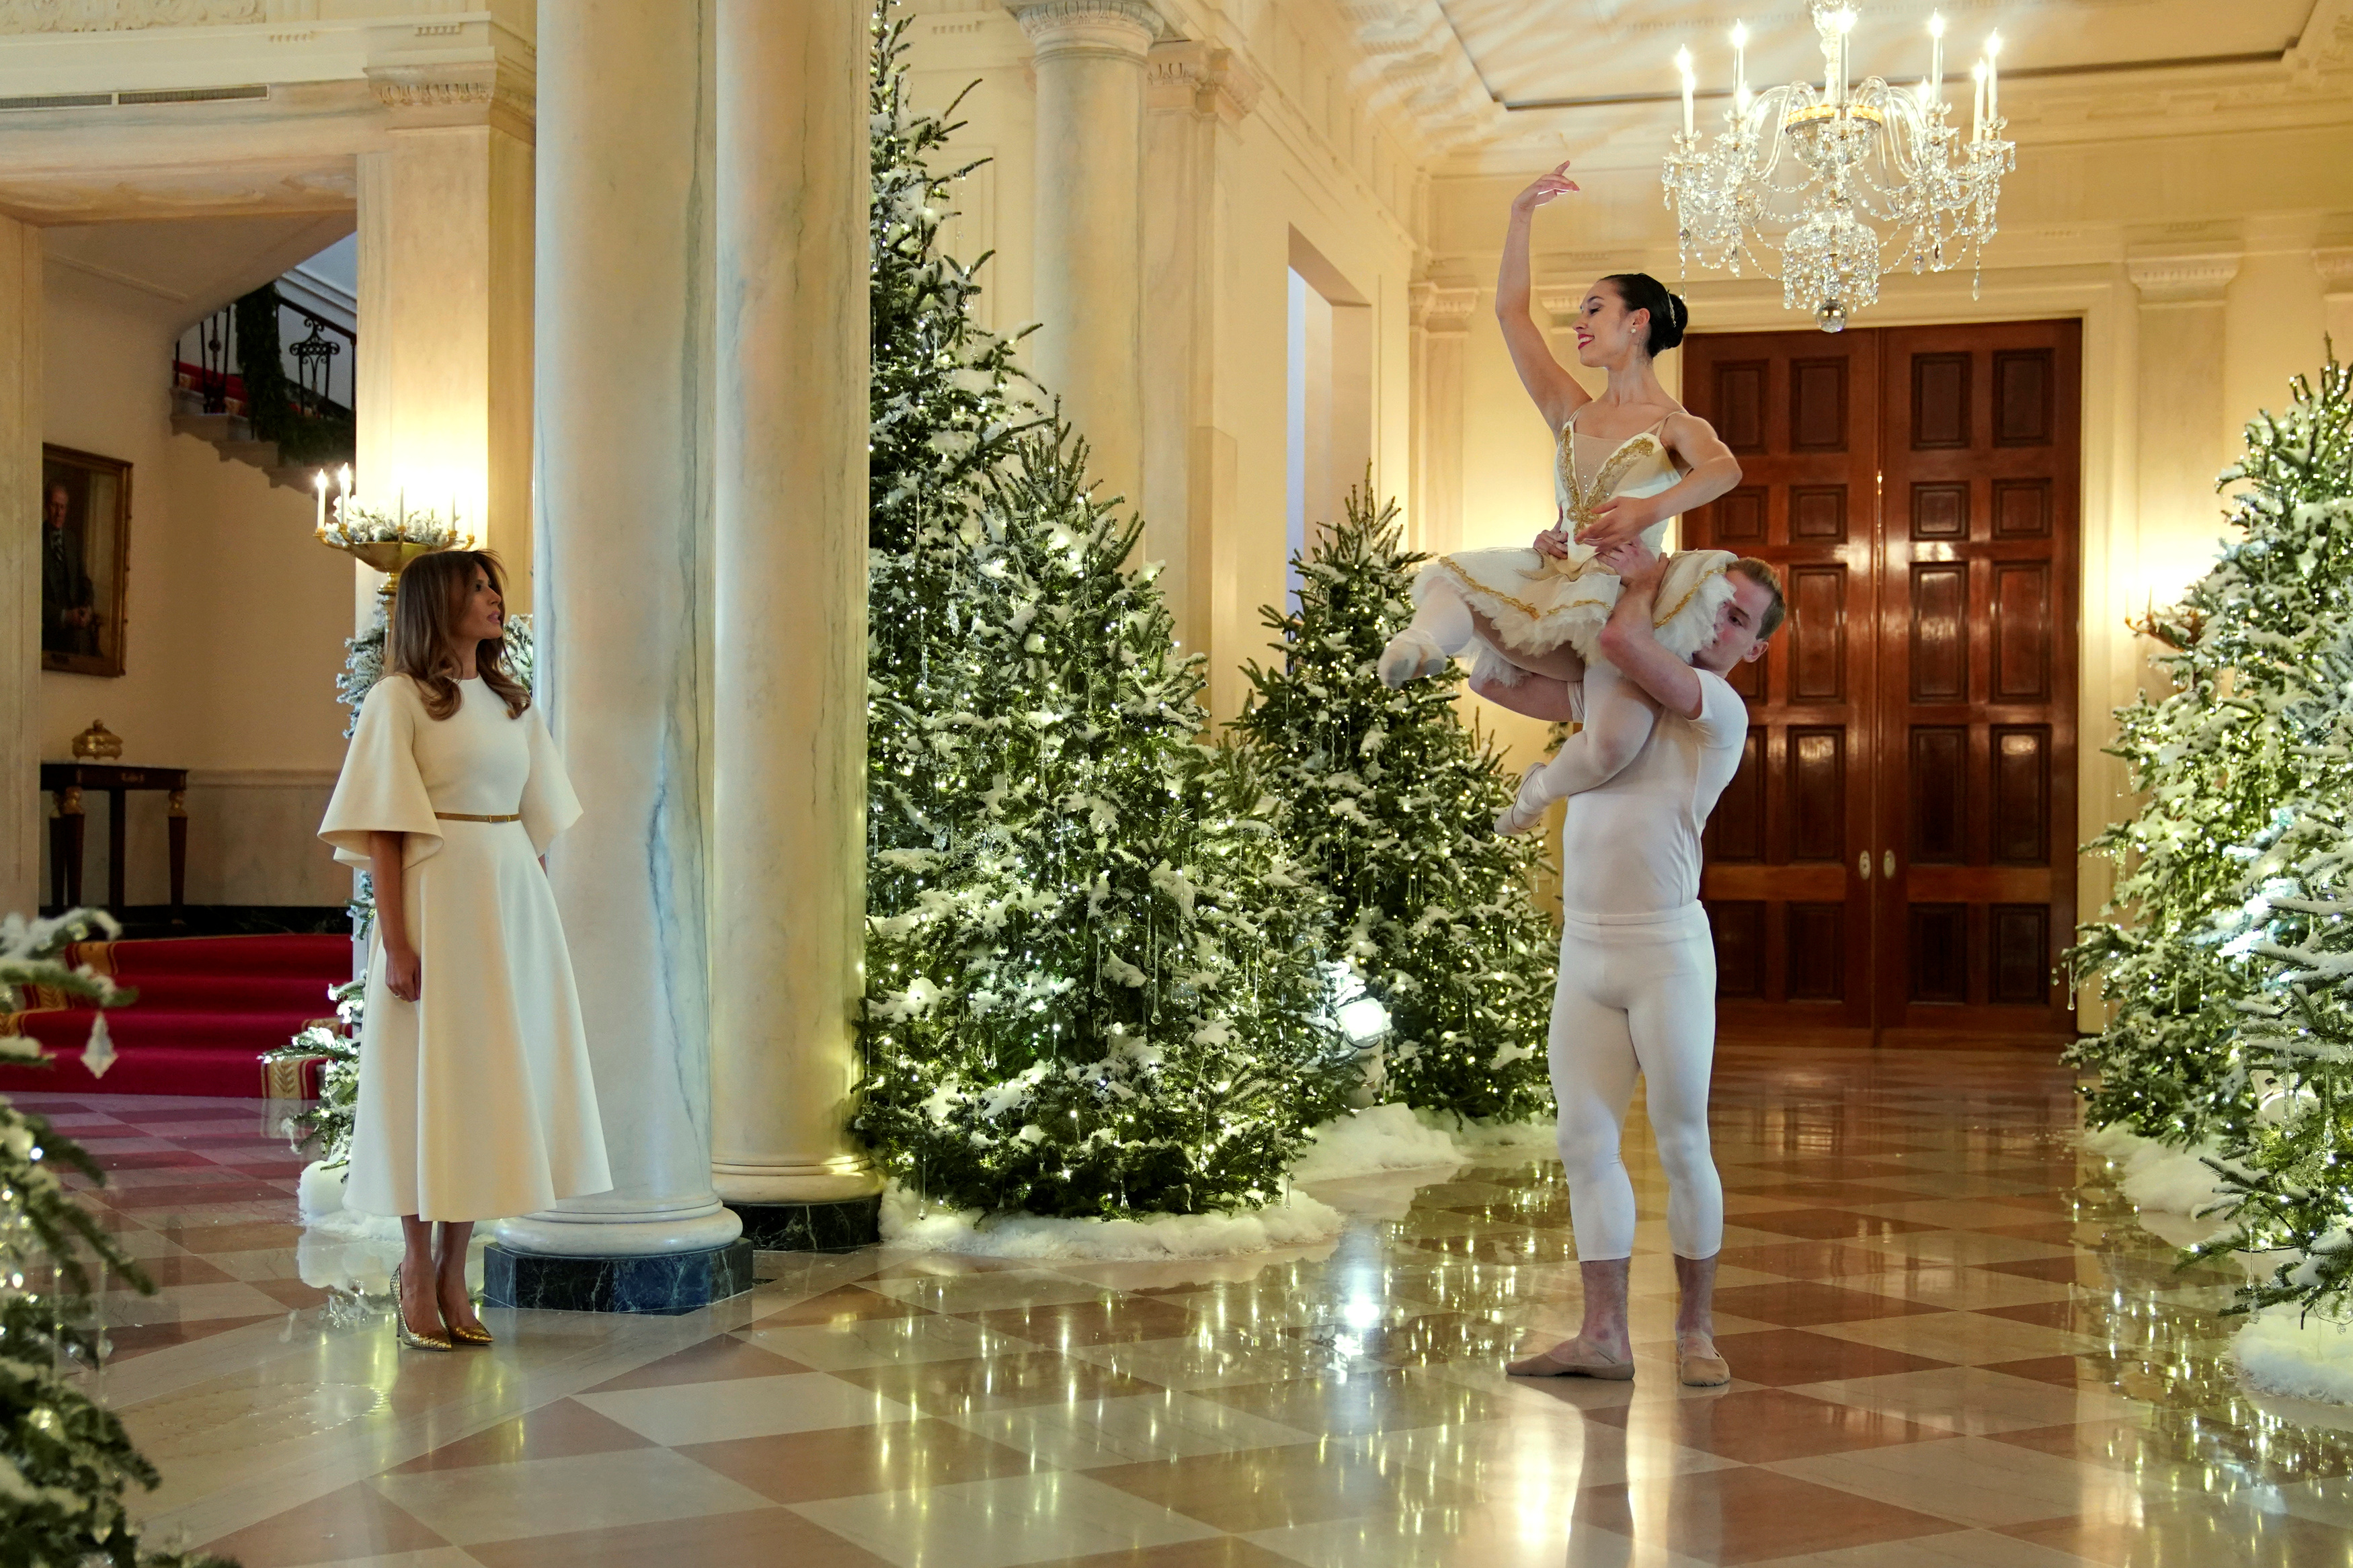 Ballet dancers perform as U.S. first lady Melania Trump begins a tour of the holiday decorations with reporters at the White House in Washington, D.C., Nov 27, 2017.